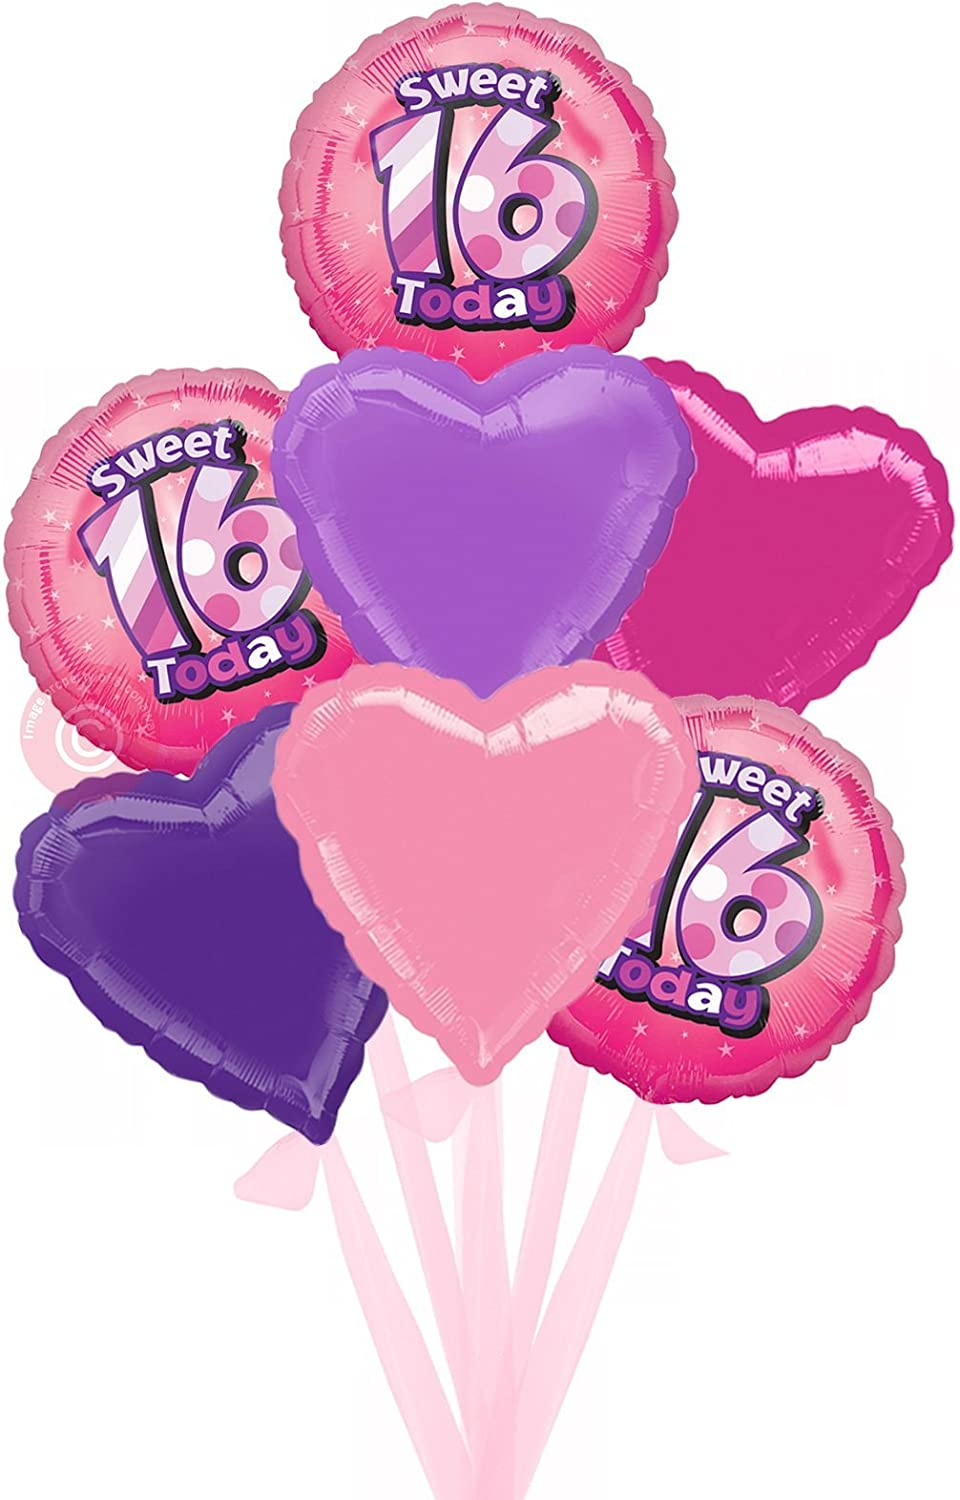 Num 16 Sweet 16   Inflated Birthday Helium Balloon Delivered in a Box  Bigger Bouquet  7 Balloons  Bloonaway